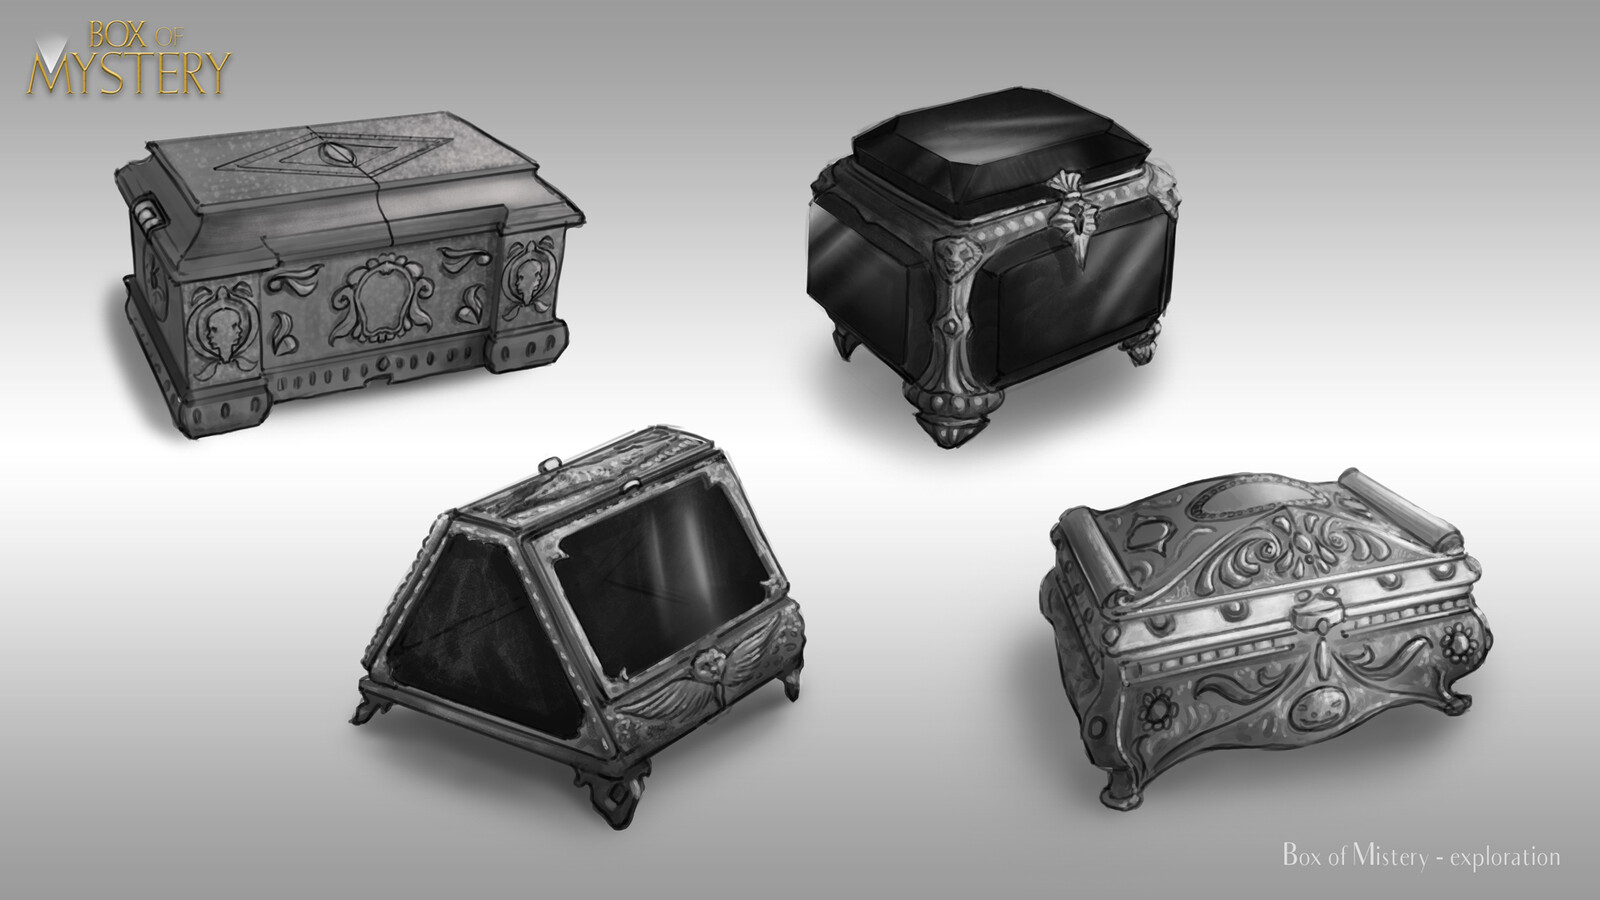 Prop design - Box of mystery